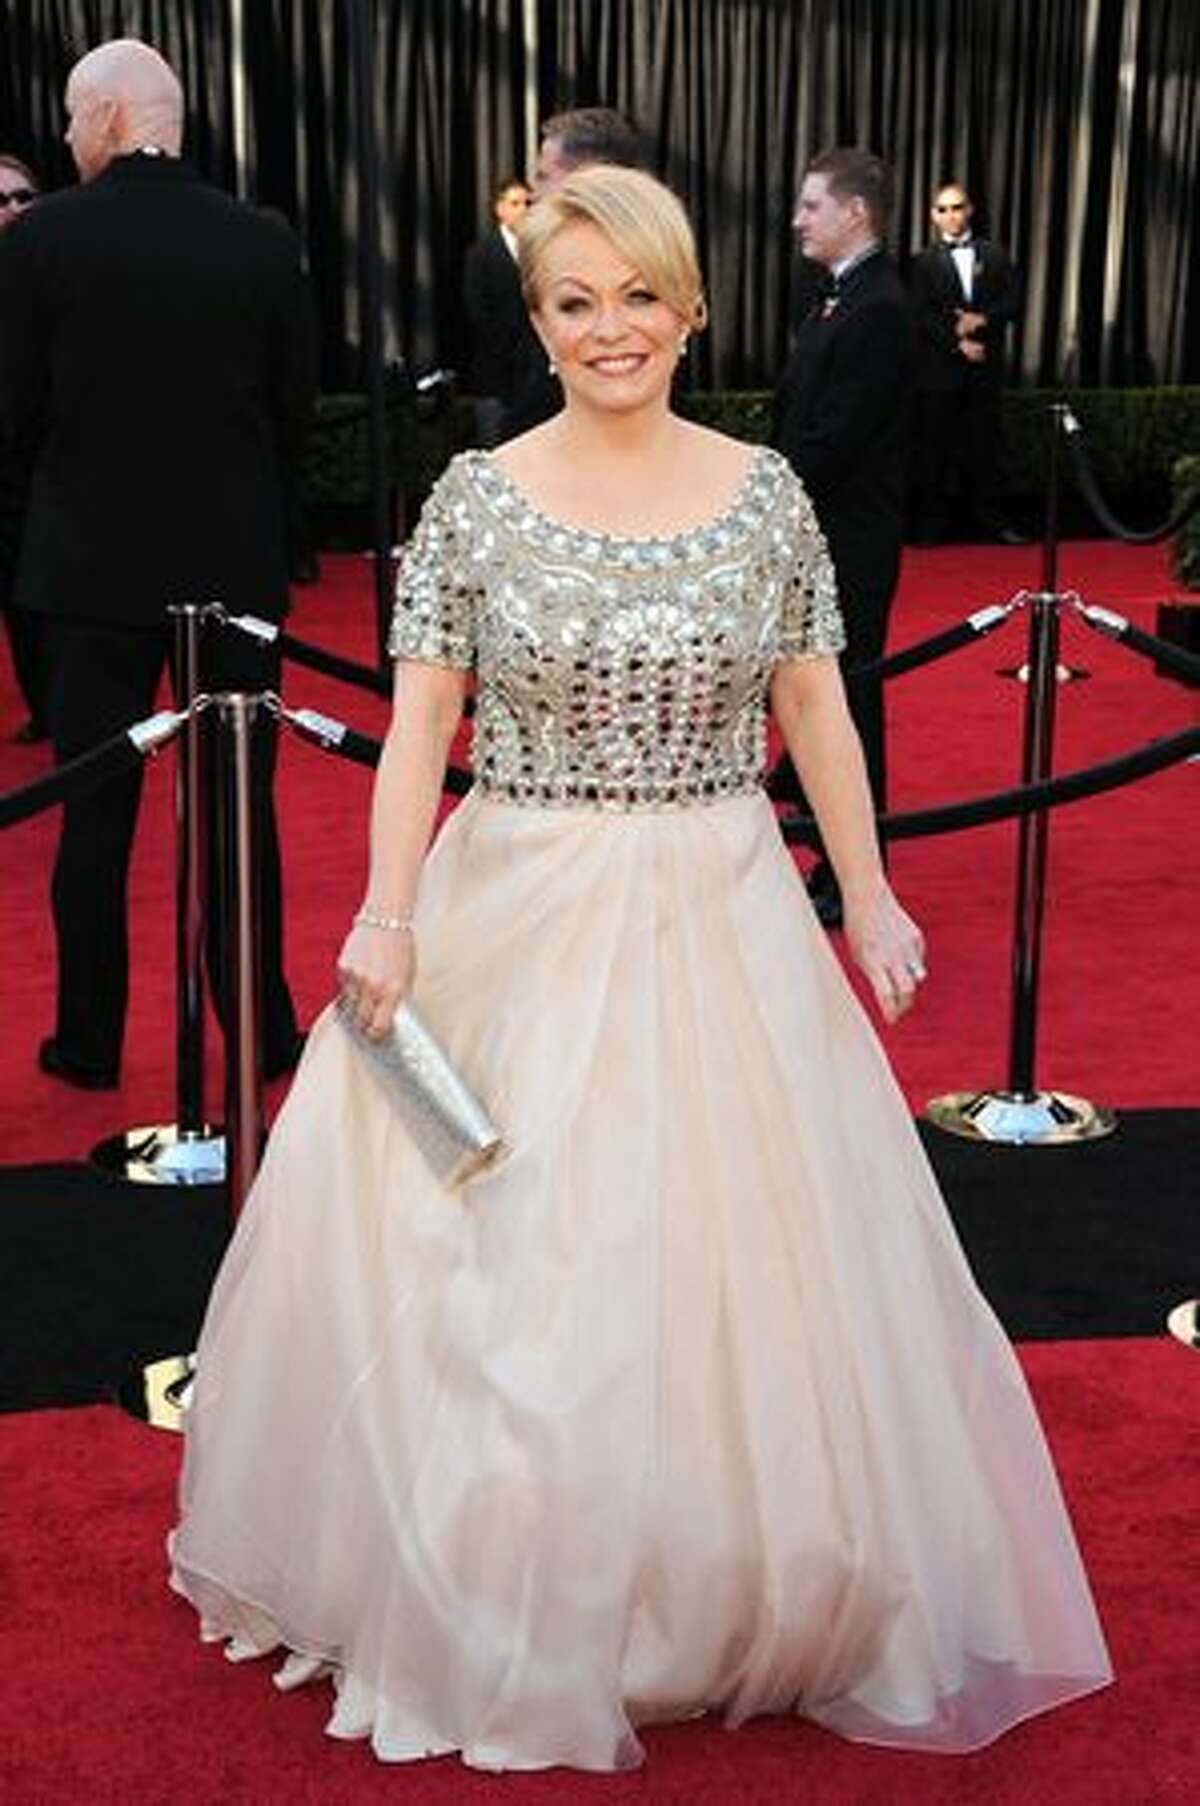 Best Supporting Actress nominee Jacki Weaver, as we pointed out at the Golden Globes, has a challenge trying to dress for these events due to her build. This is a big improvement over what she wore then, but it's still ugly. Dressing women like this is not impossible, but she needs some different advice.